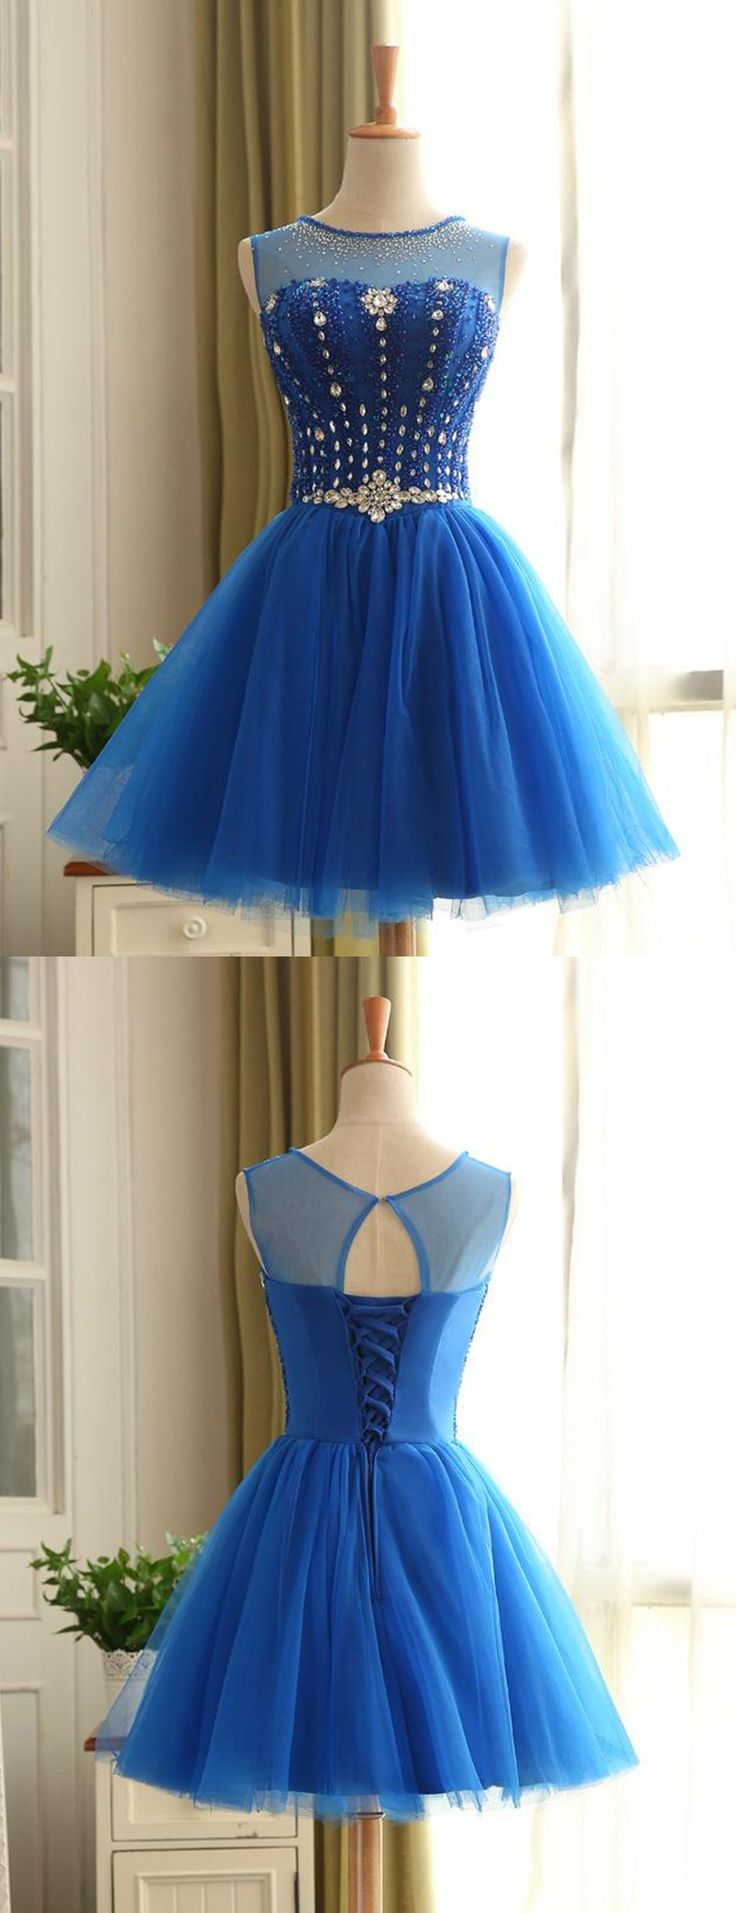 2016 homecoming dress, short homecoming dress, blue homecoming dress, dress for homecoming dress, homecoming dress with lace up